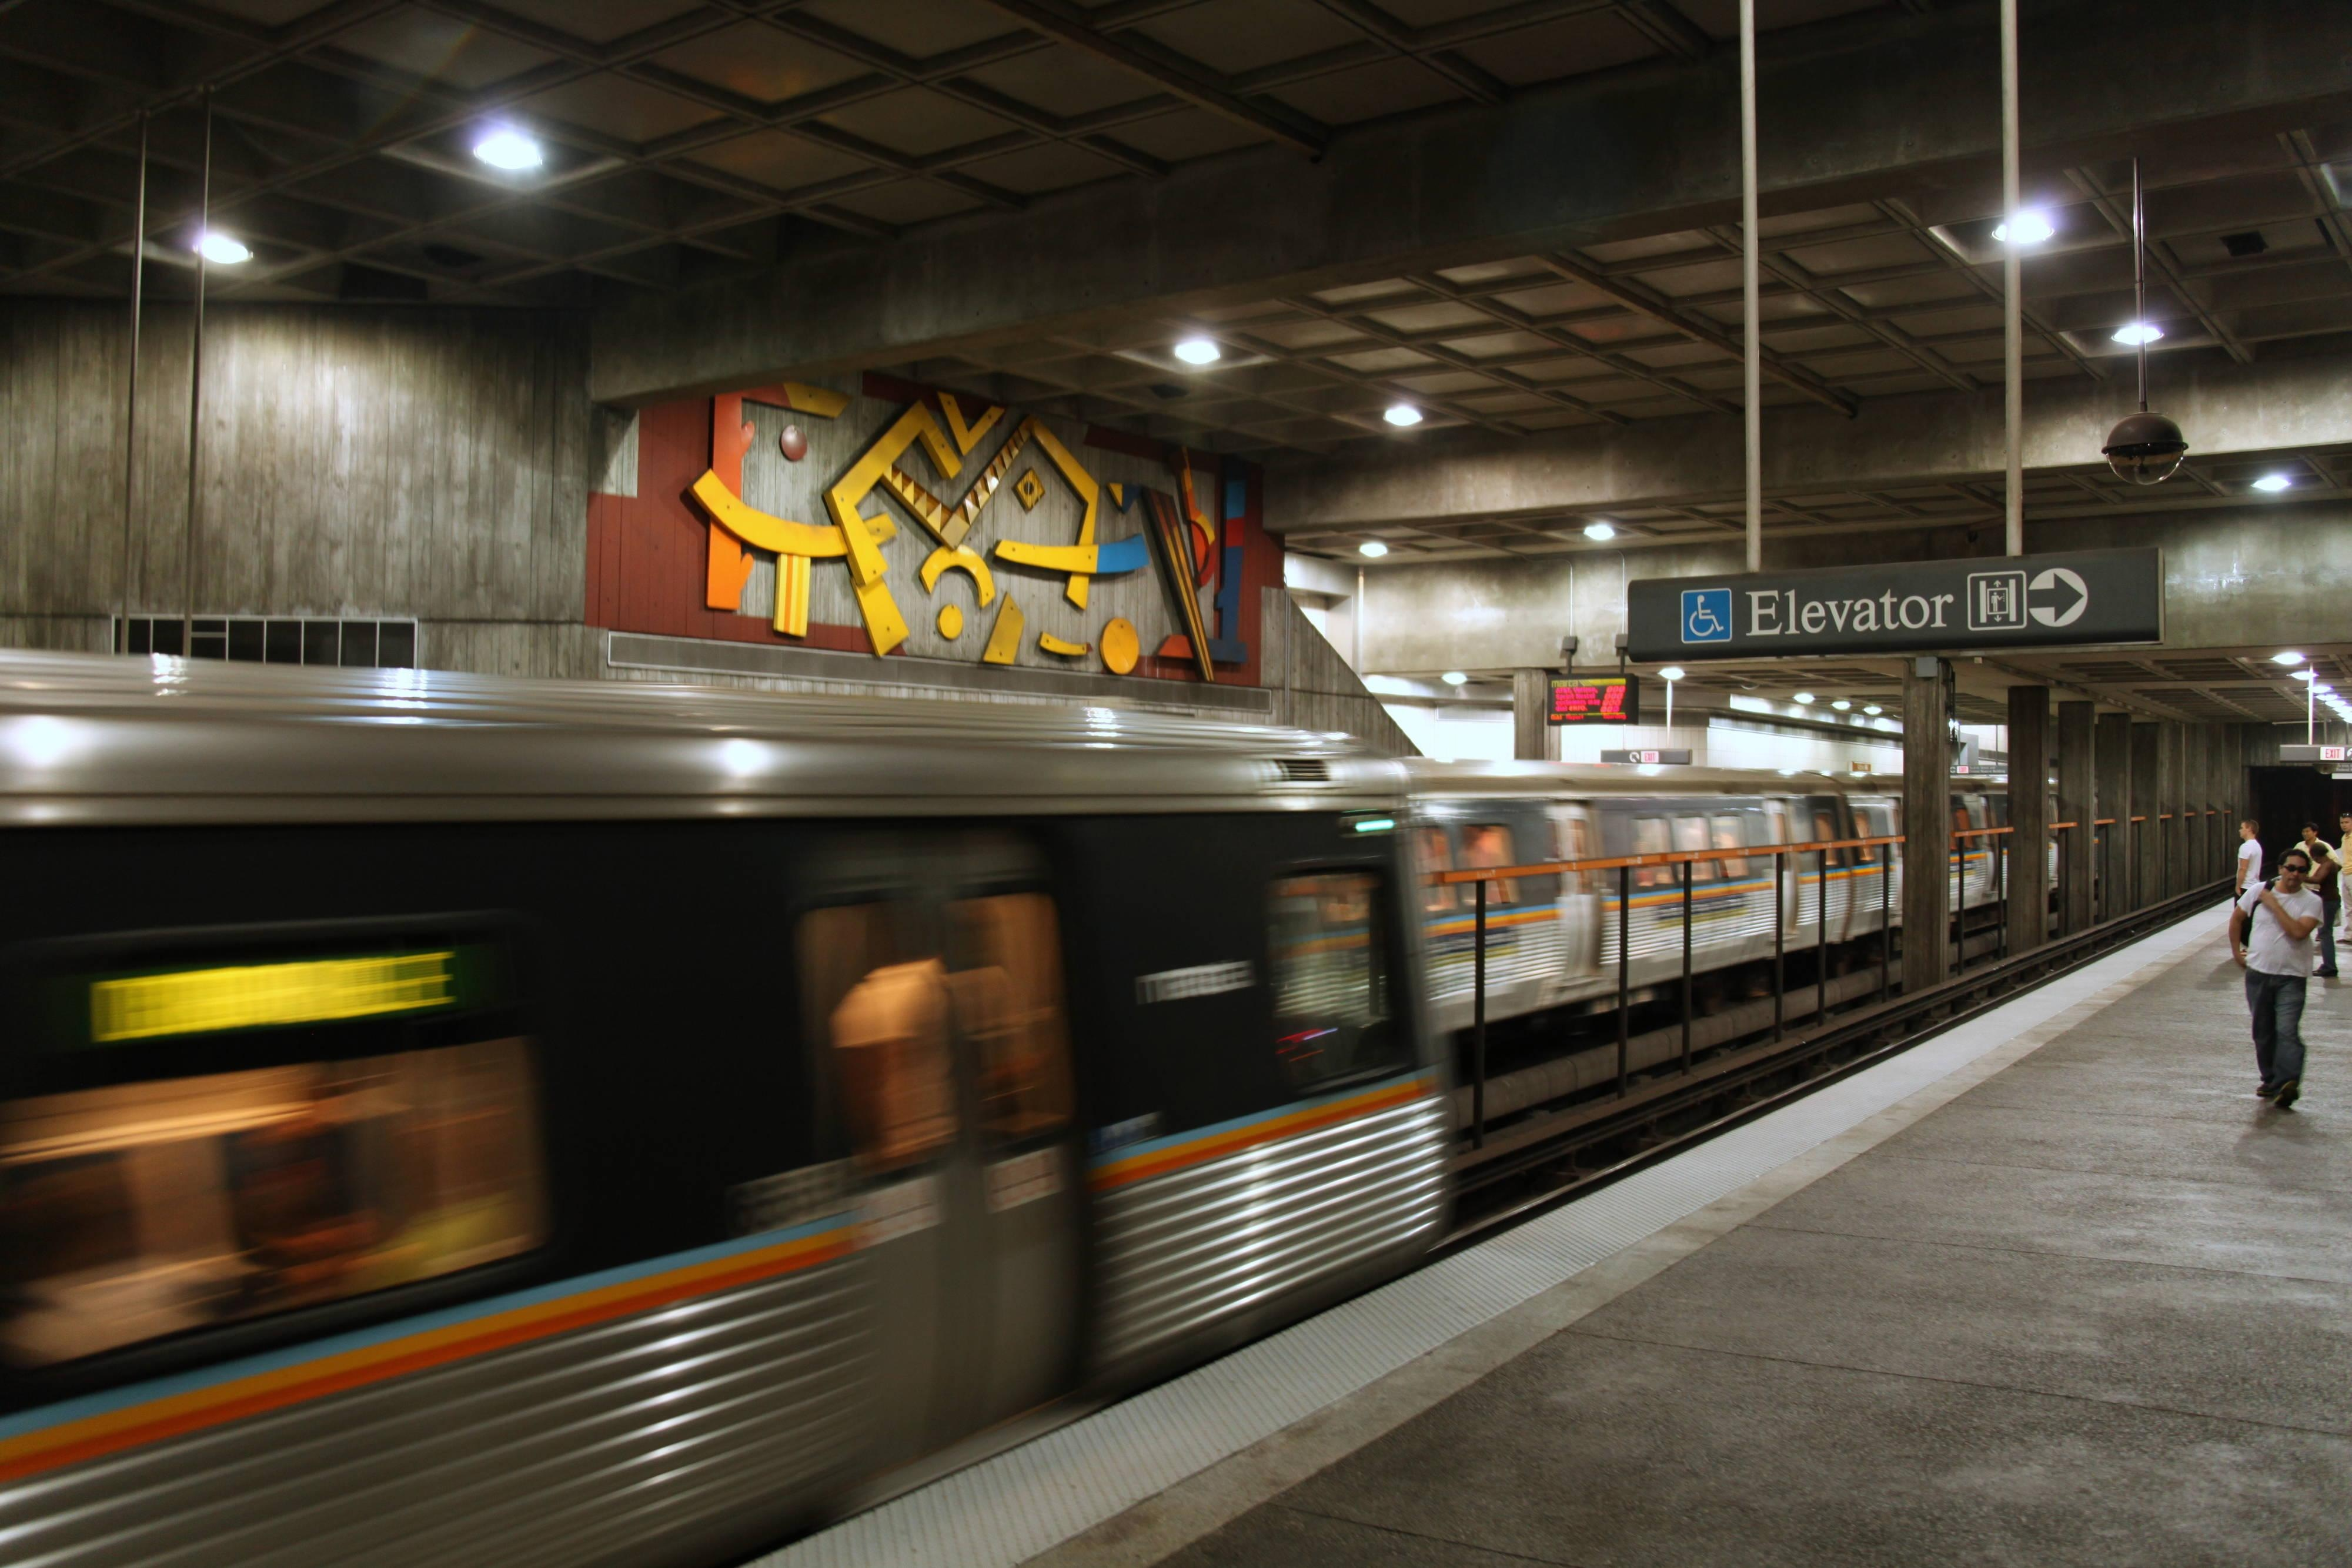 MARTA – Metropolitan Atlanta Rapid Transit Authority